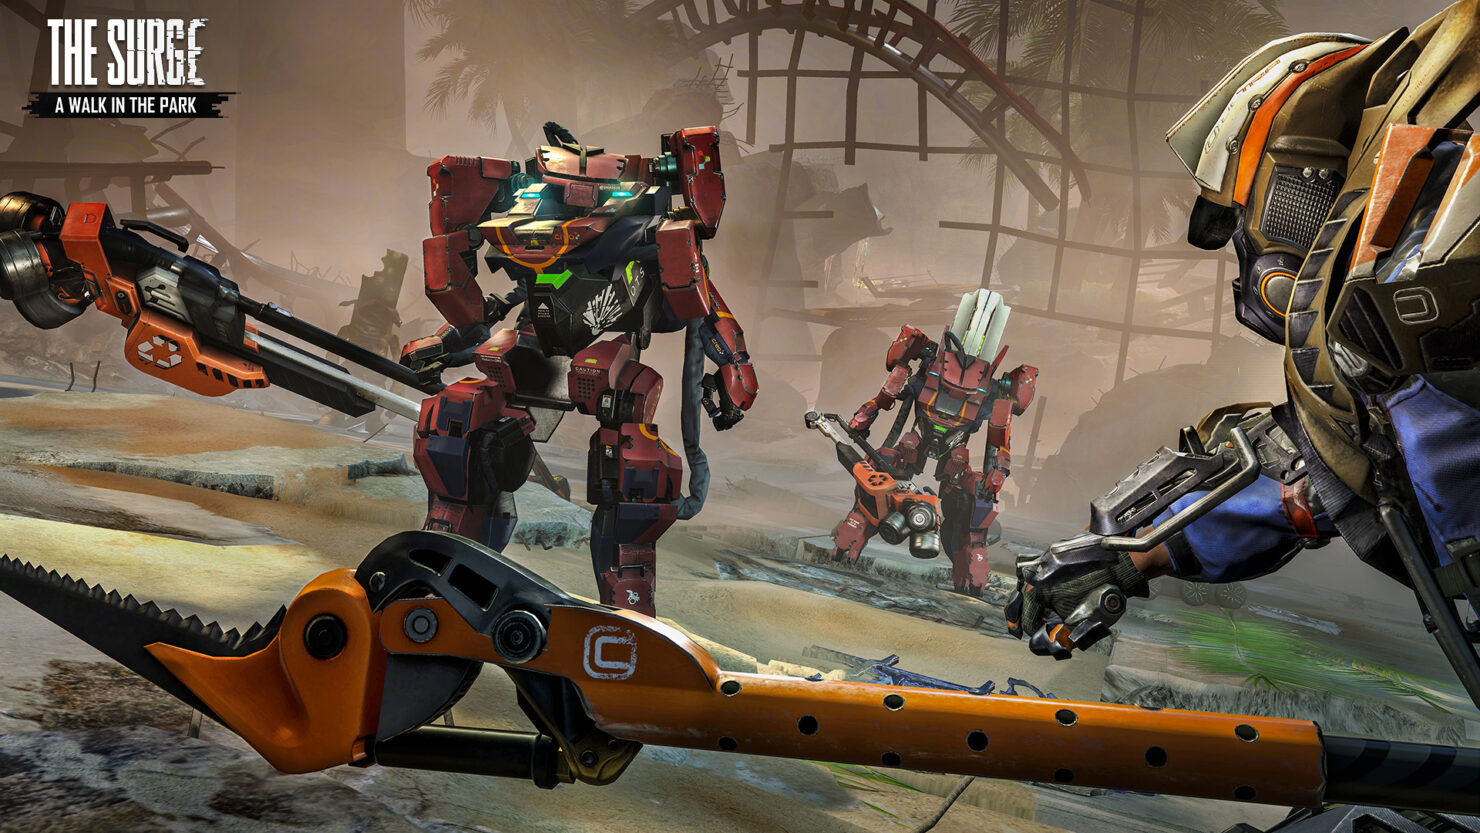 04_thesurge_a_walk_in_the_park